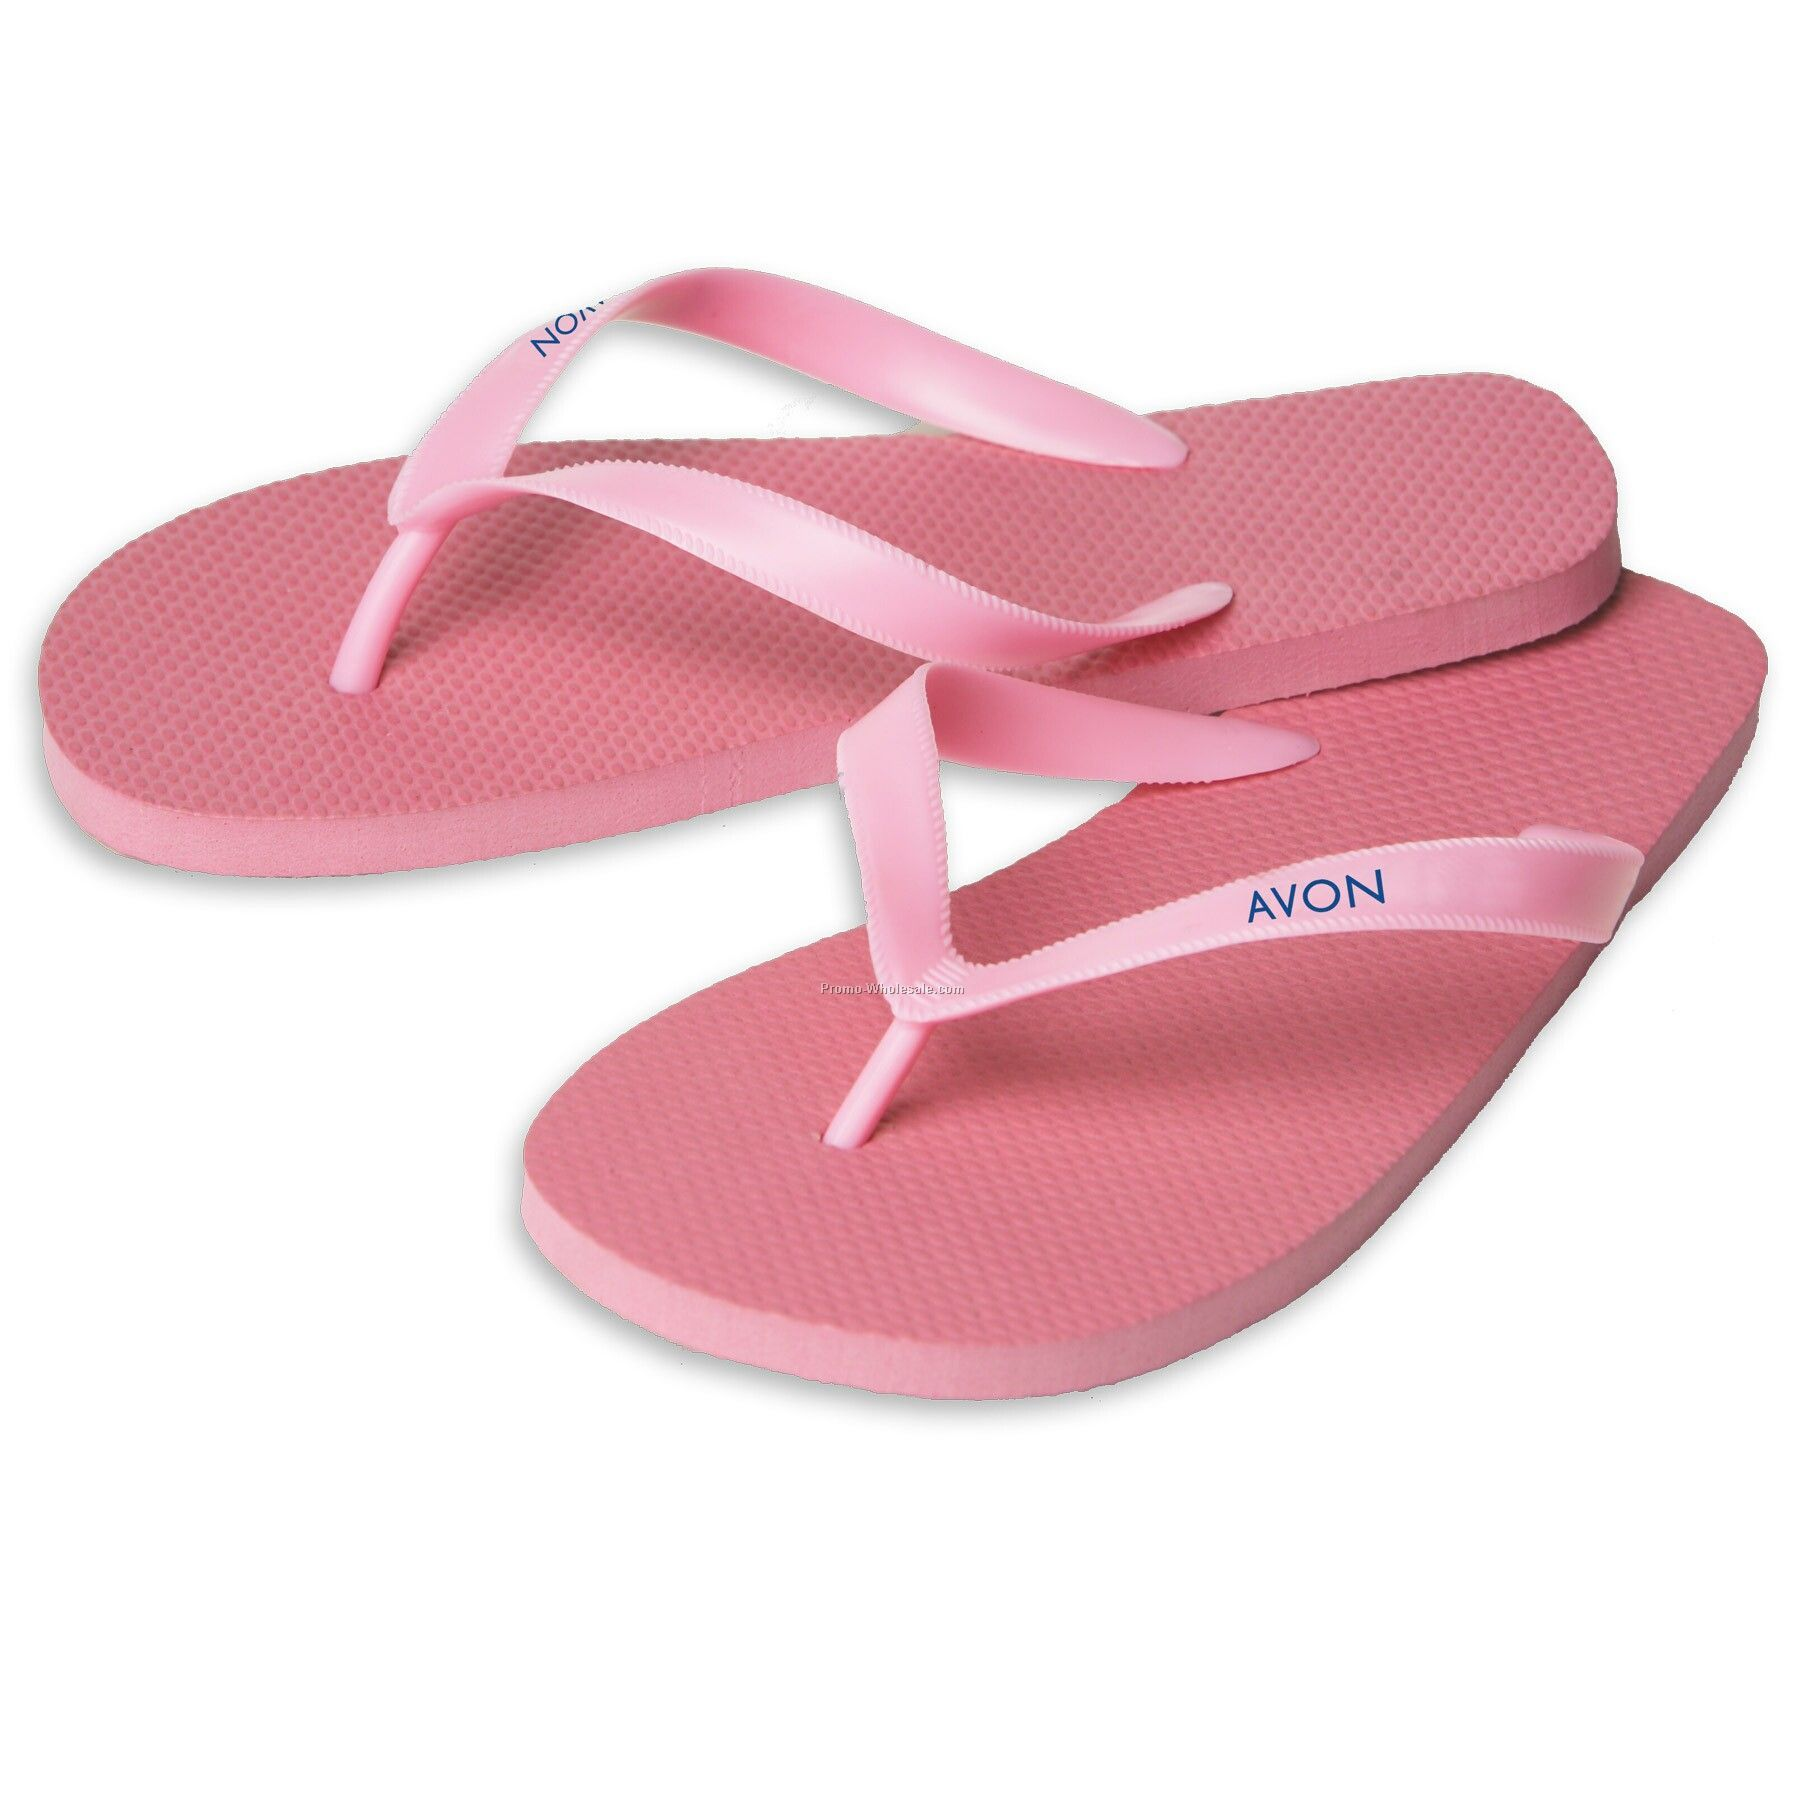 The Avalon Sandals - Classic Spa Style 12 Mm Sole Pvc Straps (Domestic)